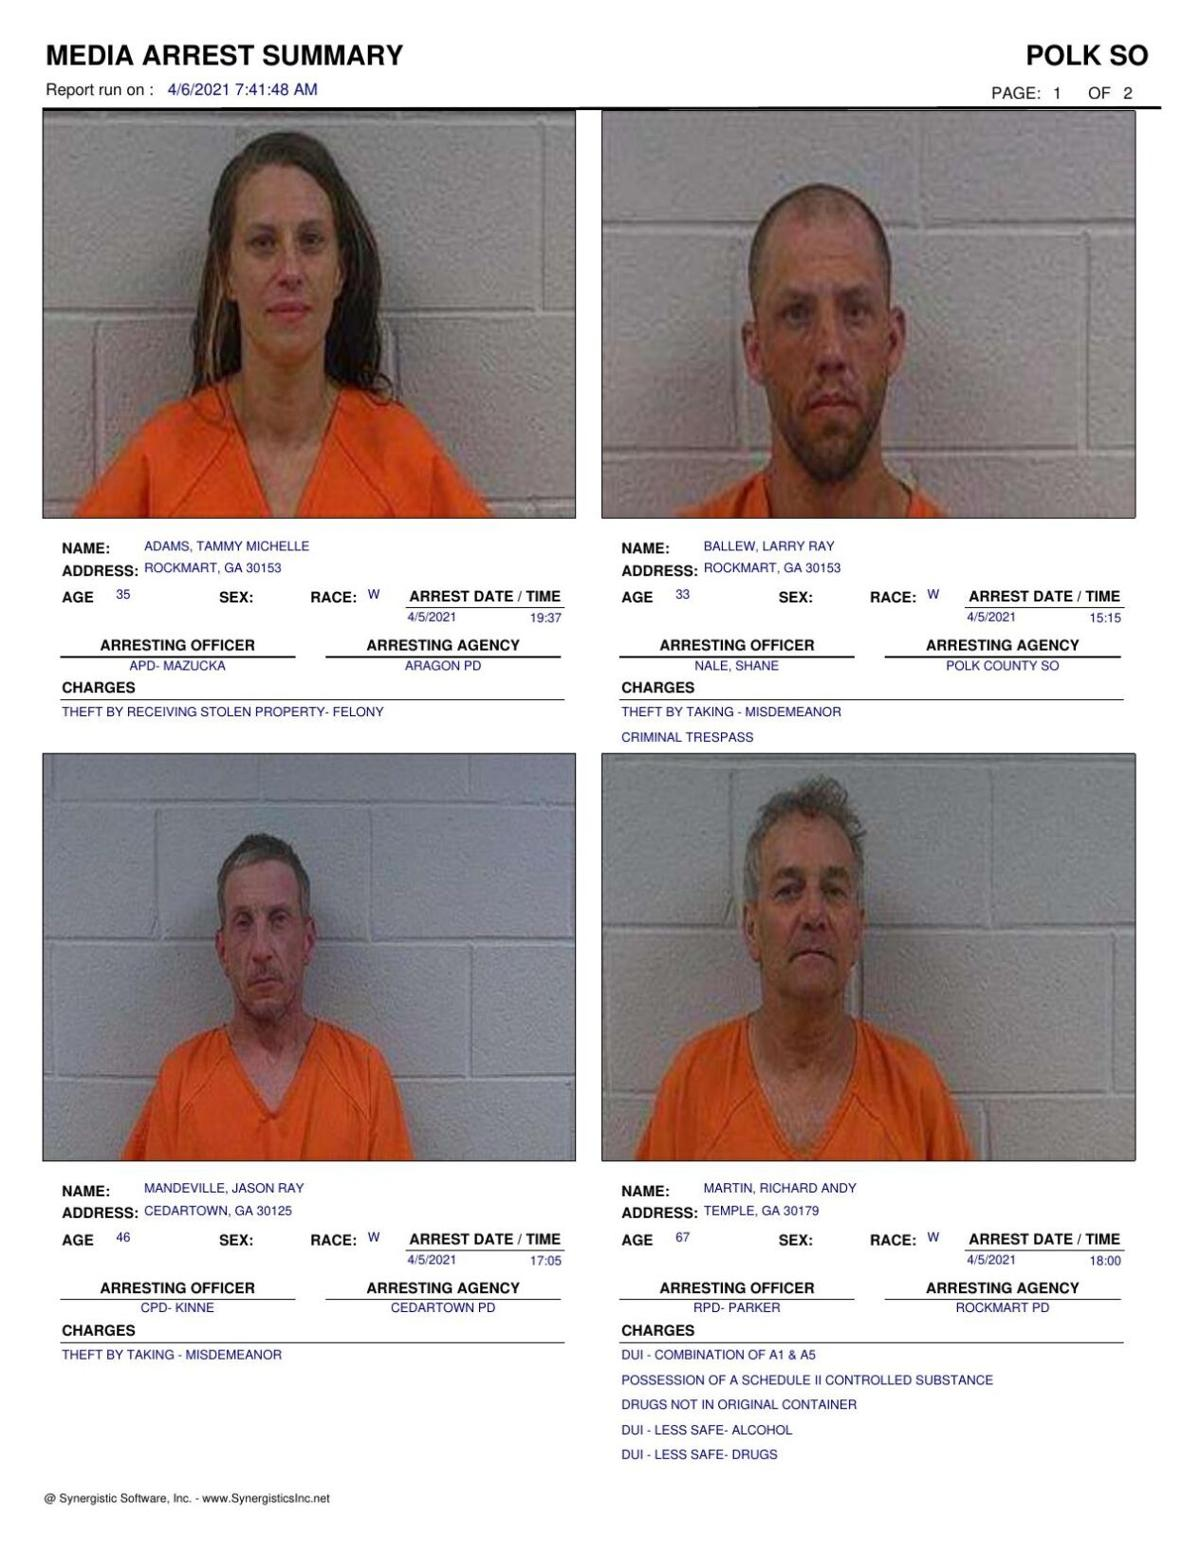 Polk County Jail Report for Tuesday, April 6